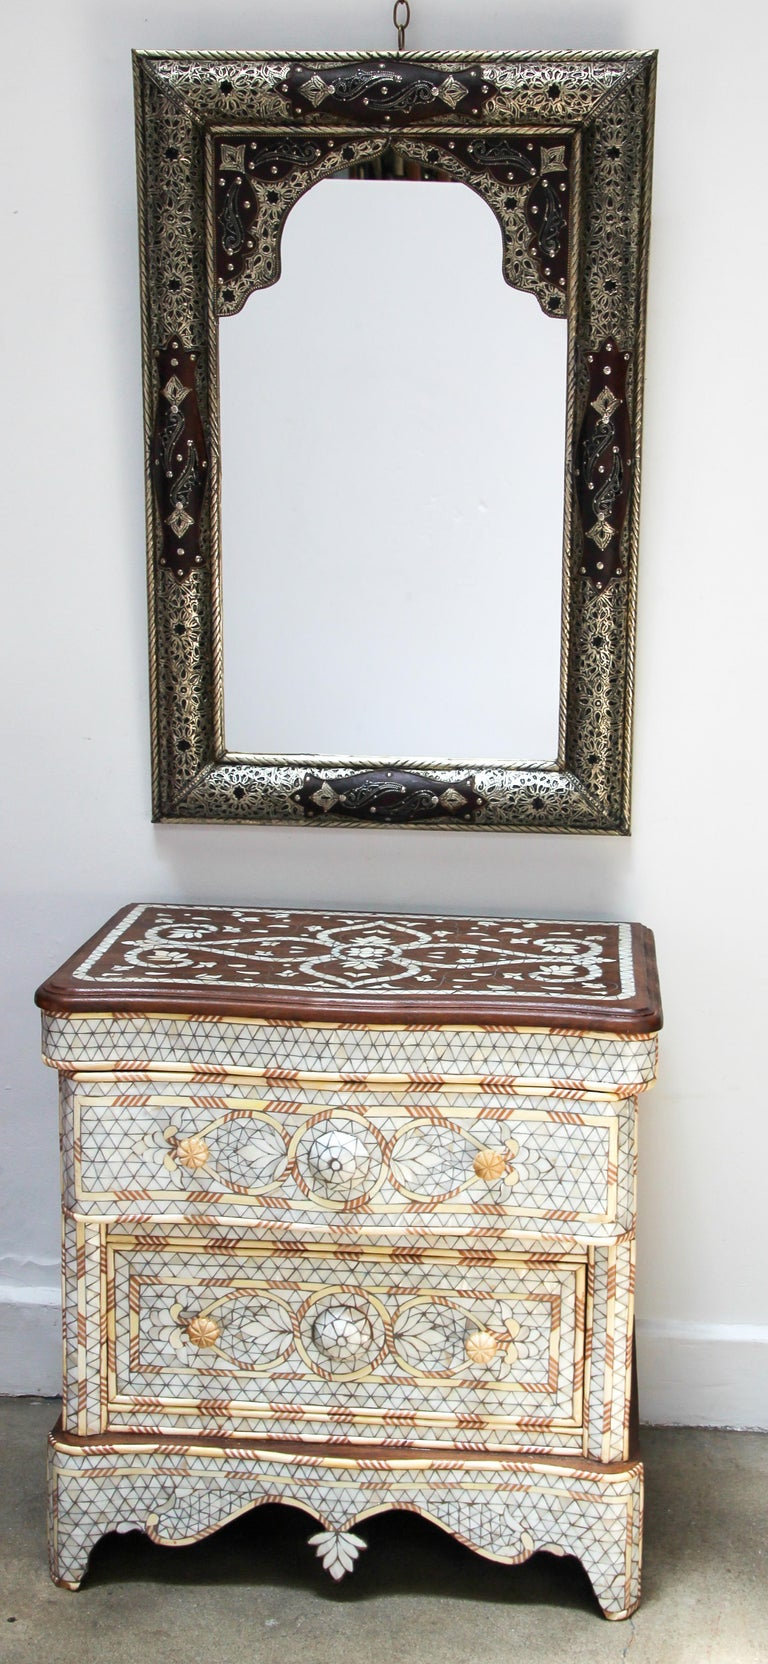 Moroccan Mirror with Silver Filigree and Repousse Metal For Sale 14